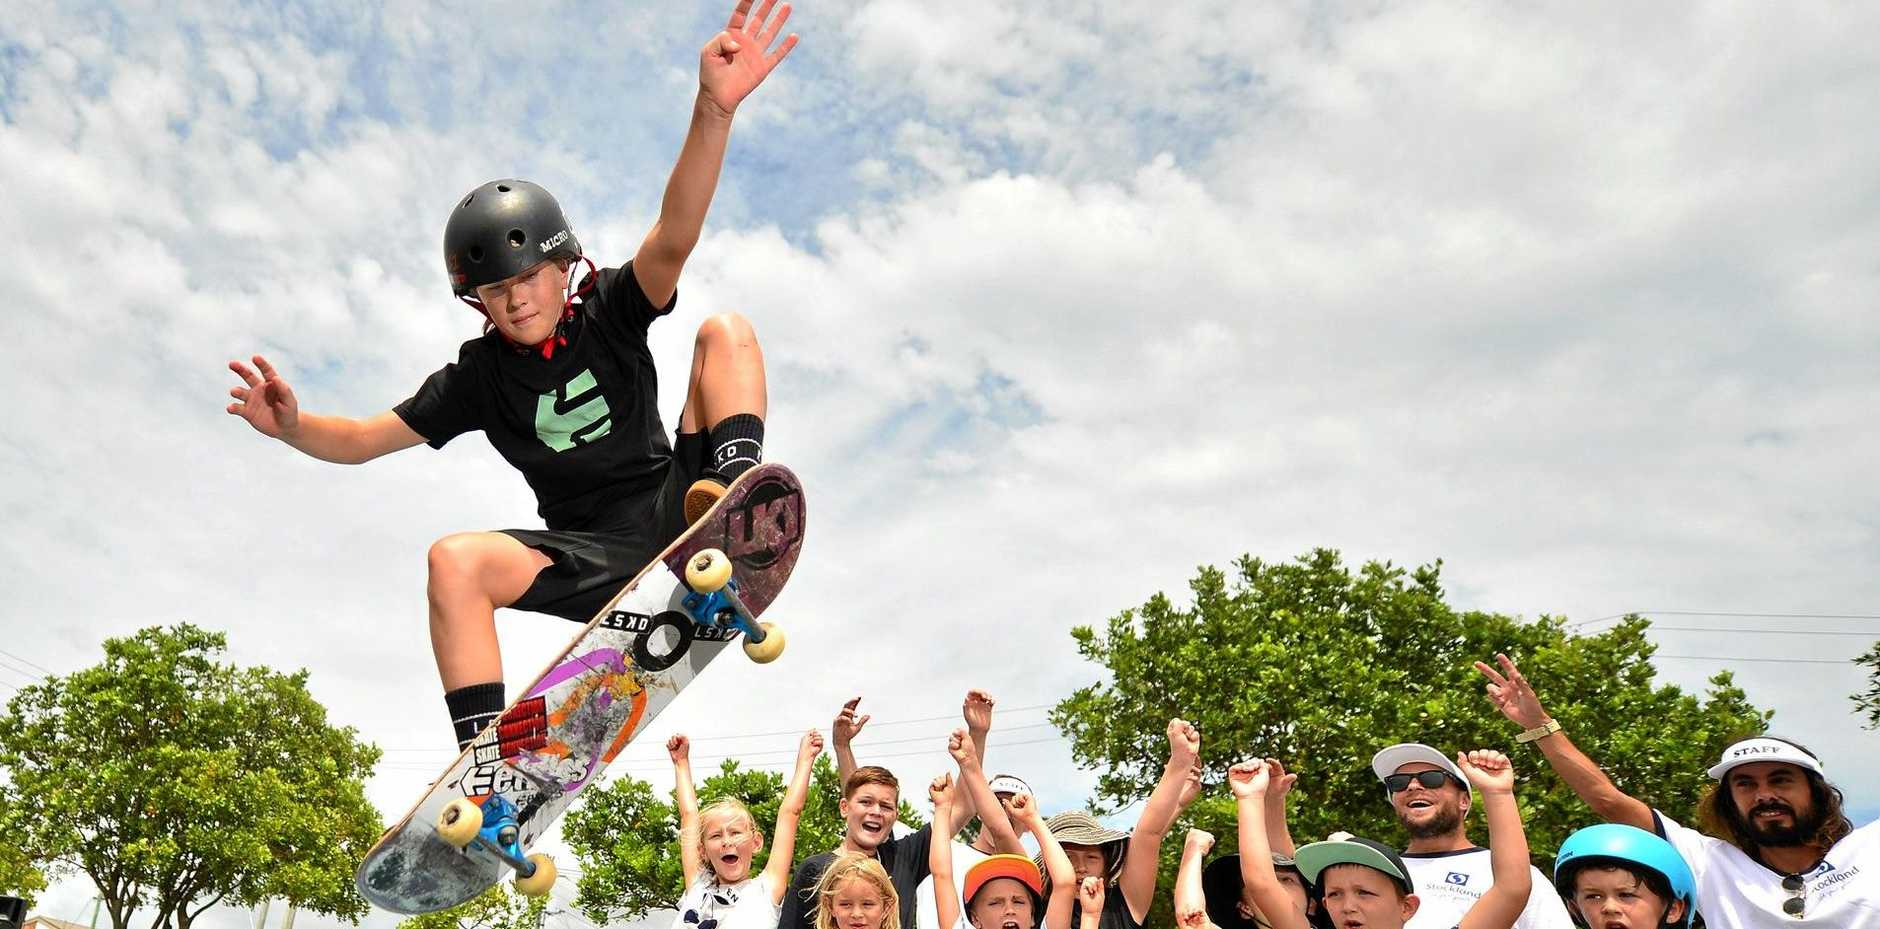 SHRED: Queensland Women's Champion skateboarder Haylie Powell has been on hand to help out fellow skaters at the pop-up skate park in Caloundra.